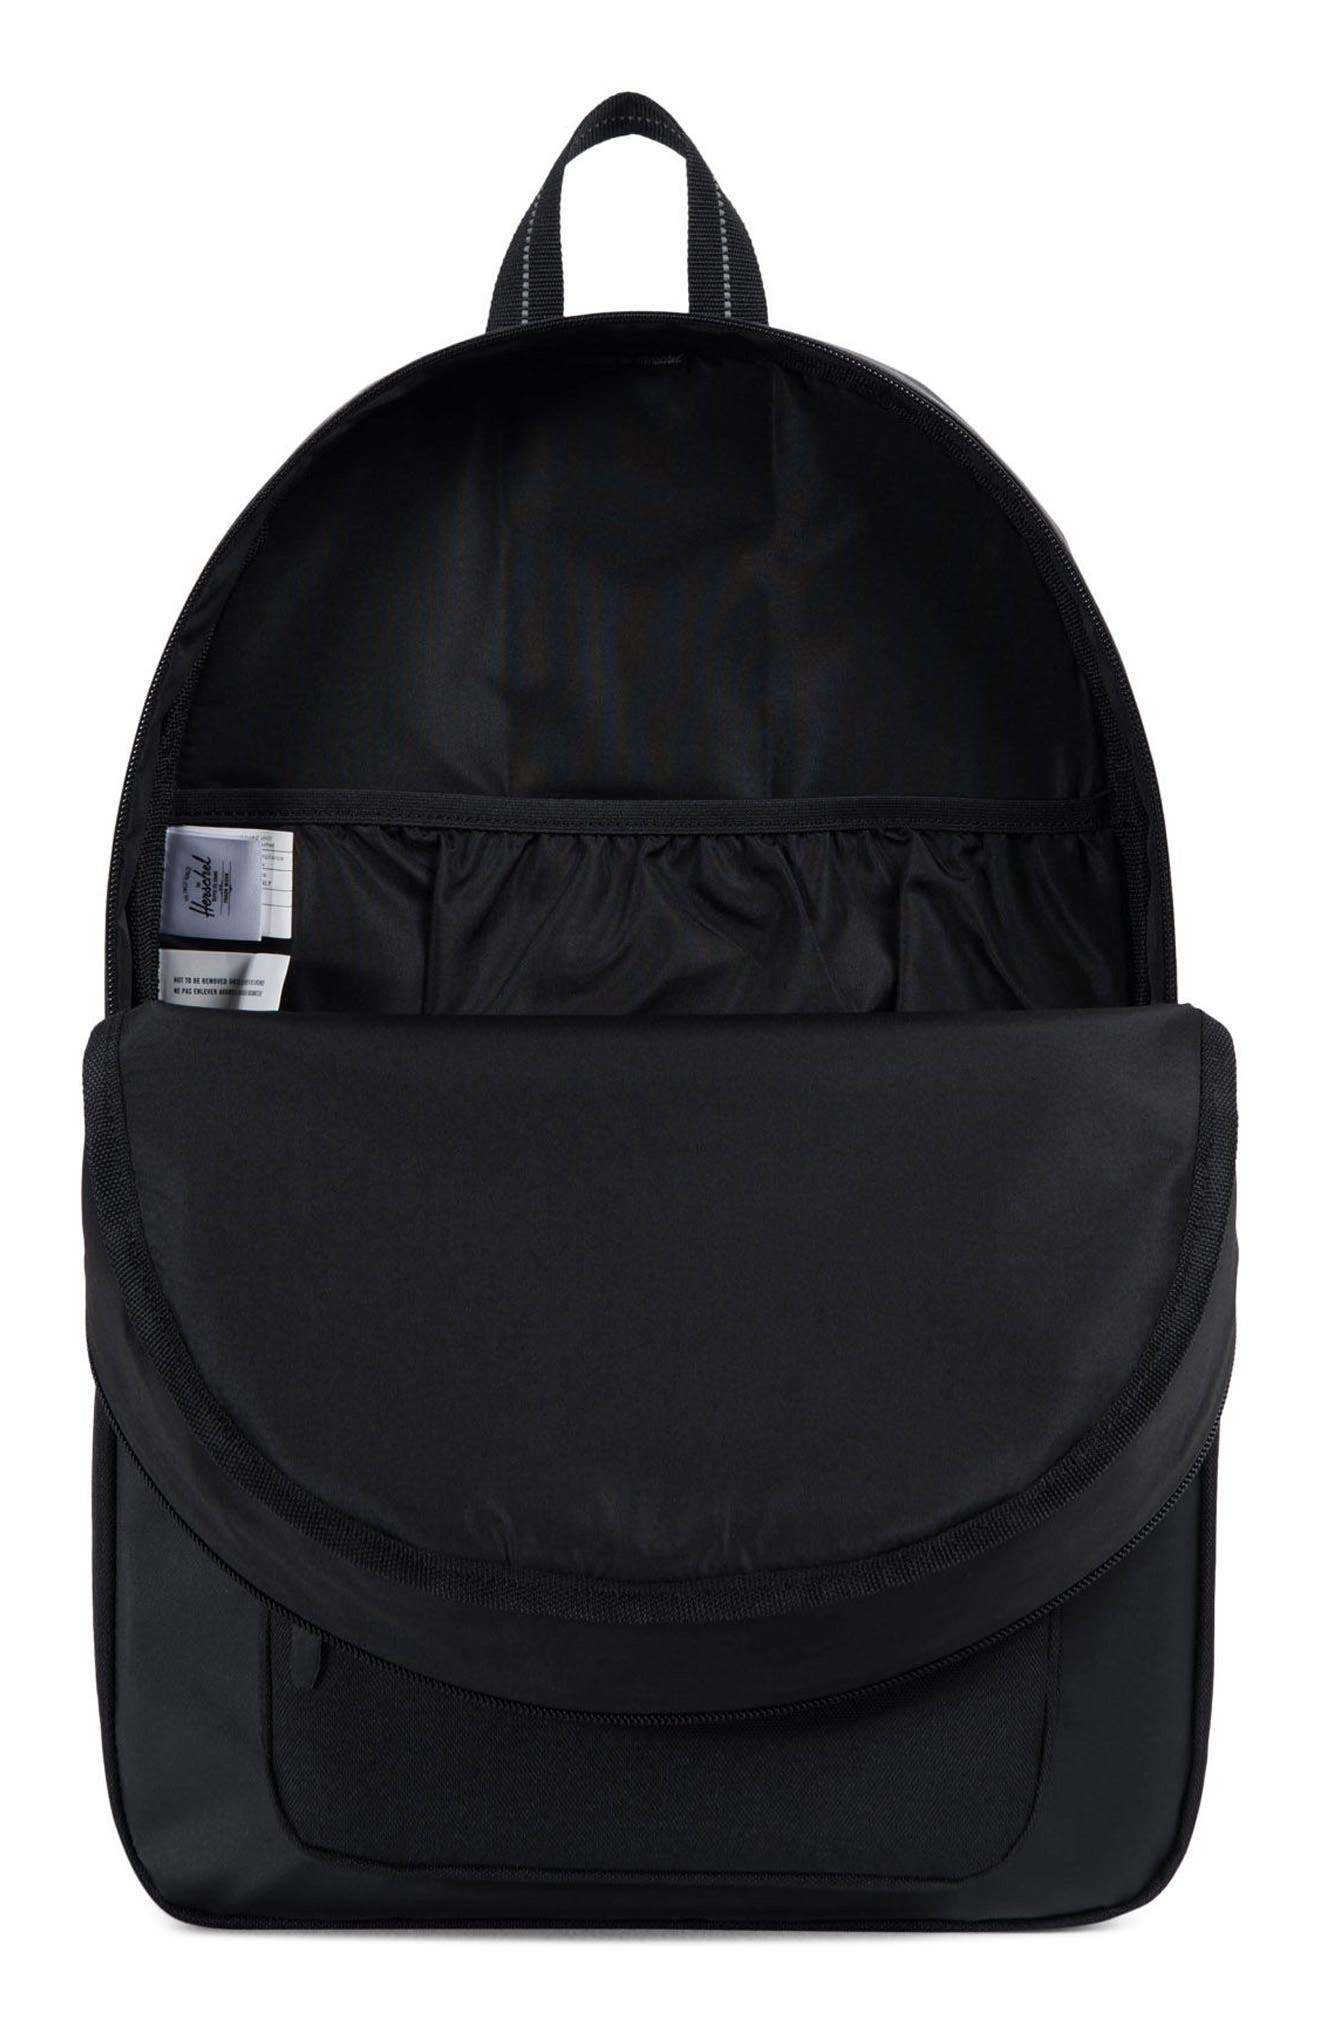 Ruskin Studio Collection Backpack,                             Alternate thumbnail 2, color,                             007